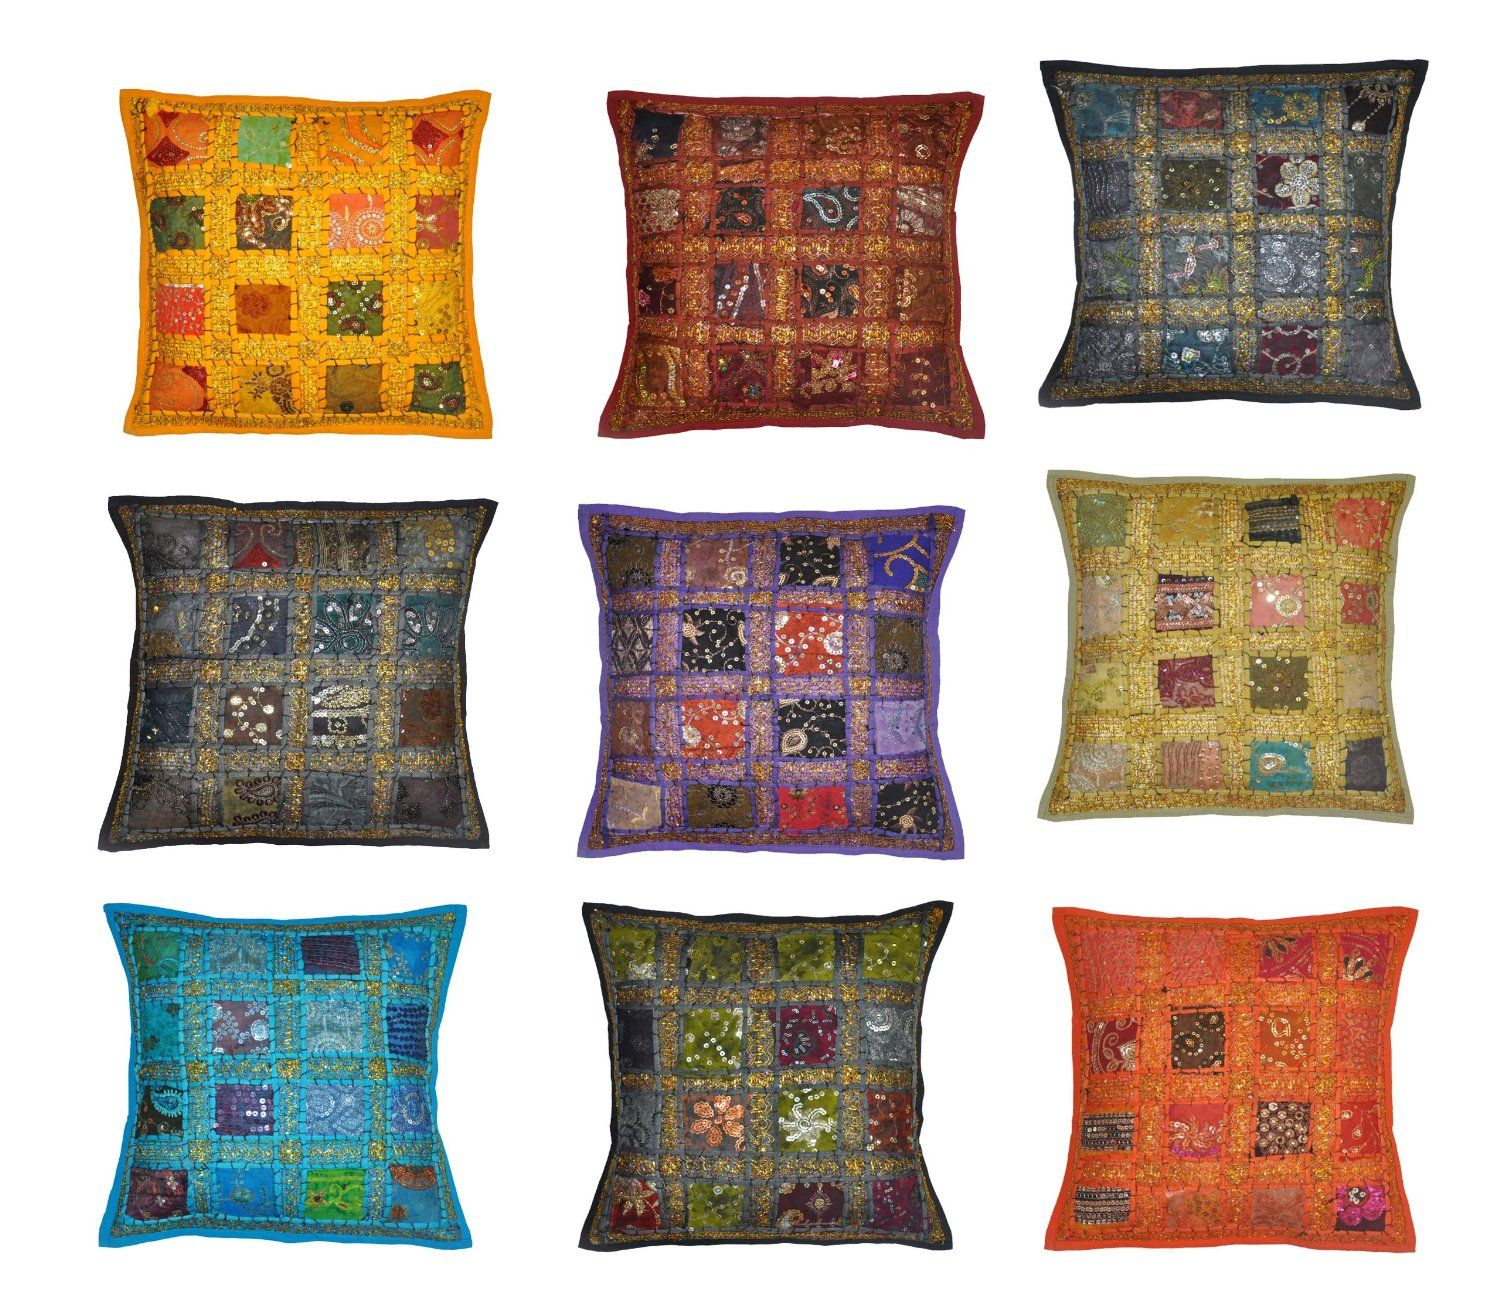 Moroccan Home Decor Ideas By Handmade Pillow Covers Handmade